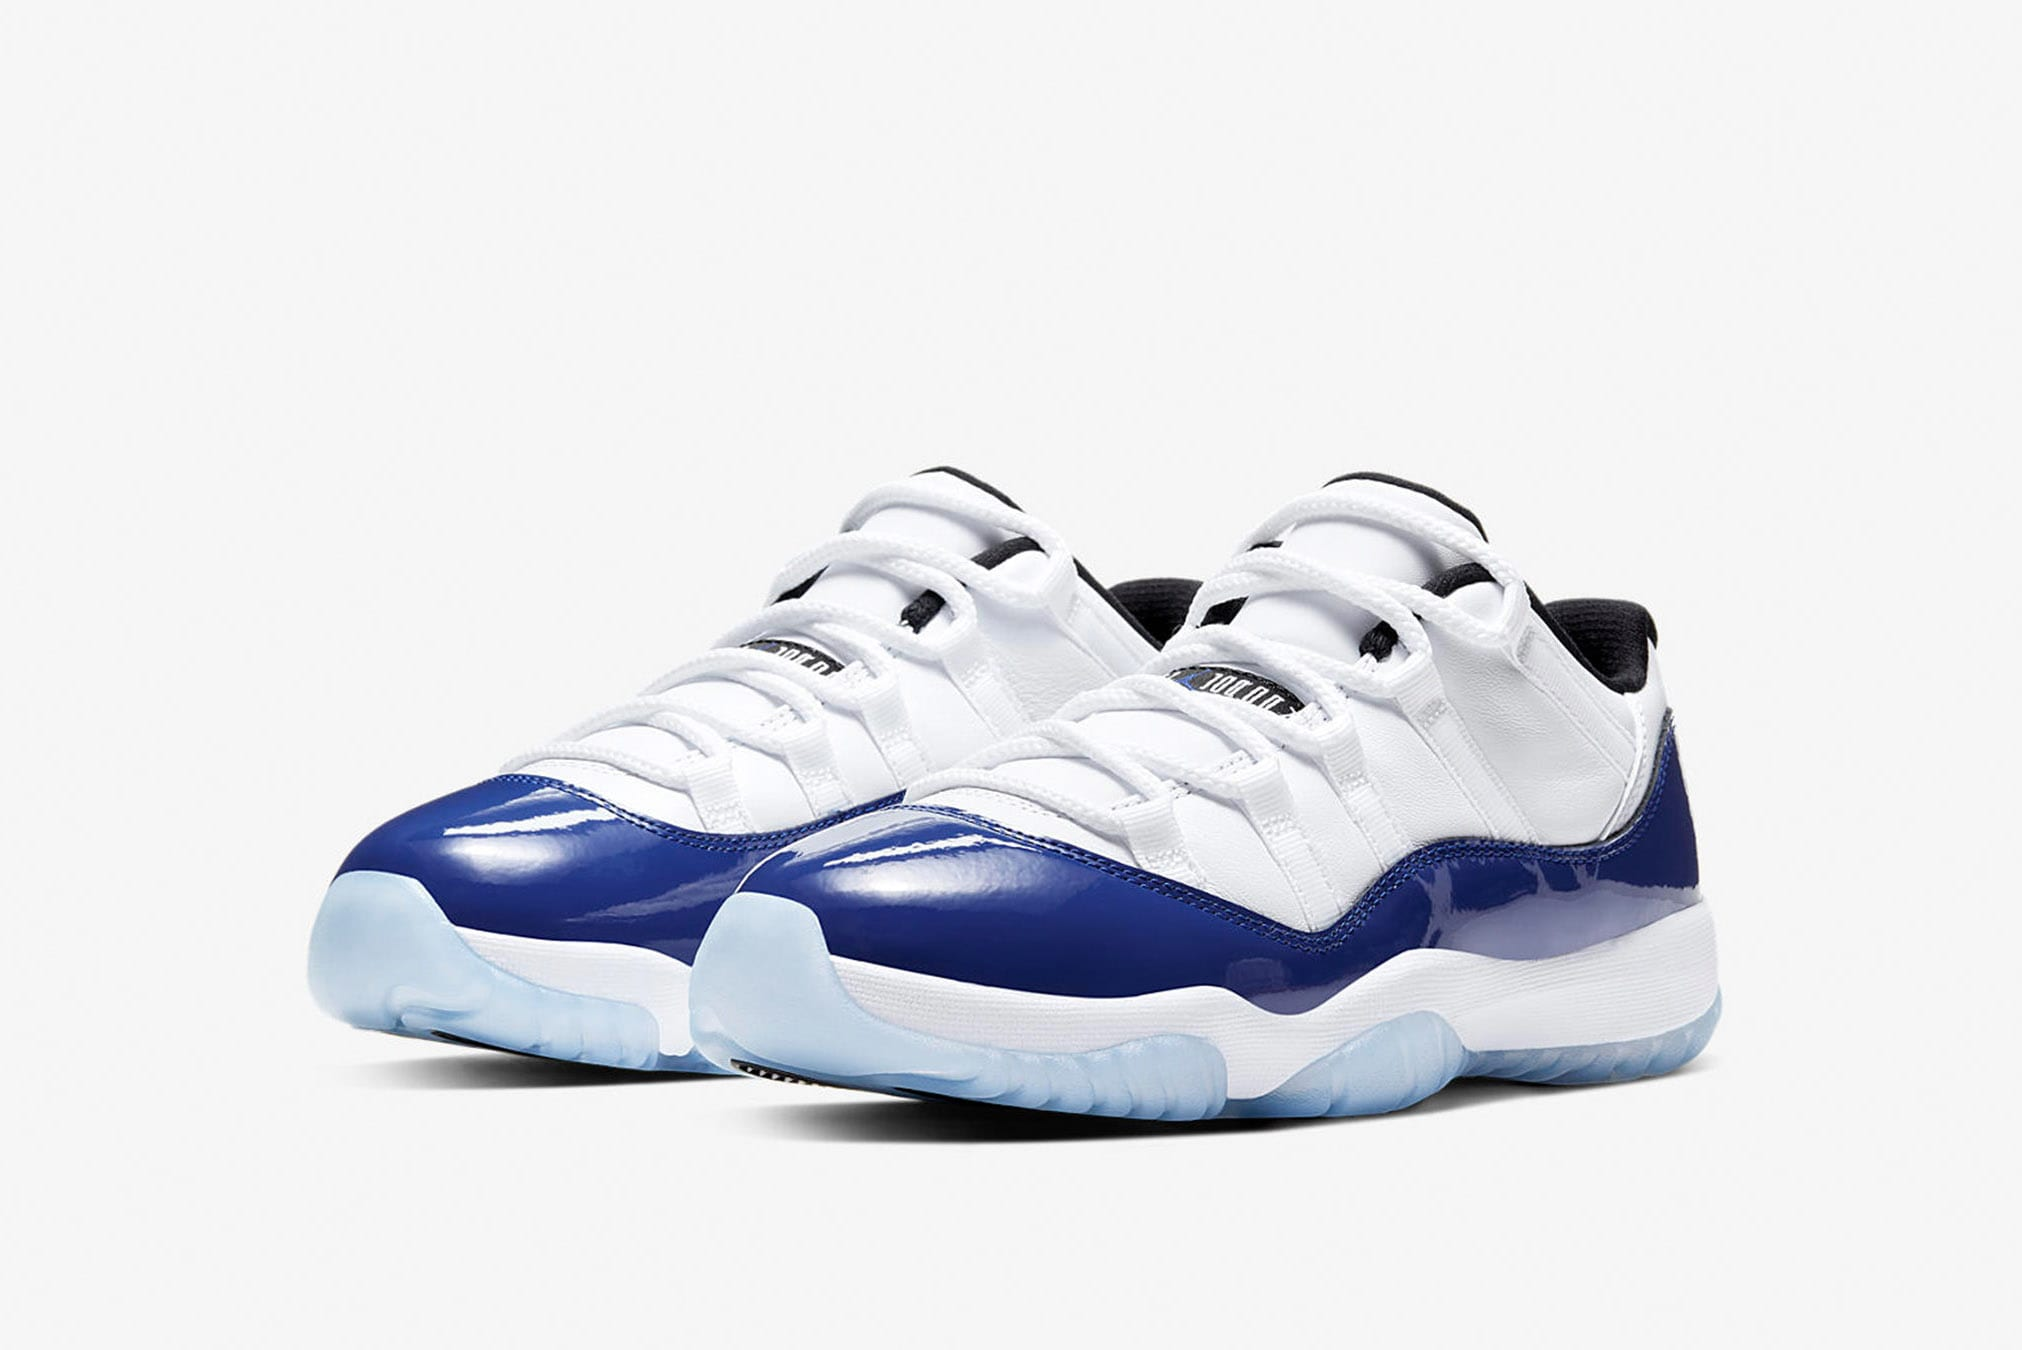 Air Jordan 11 Retro Low W - AH7860-100